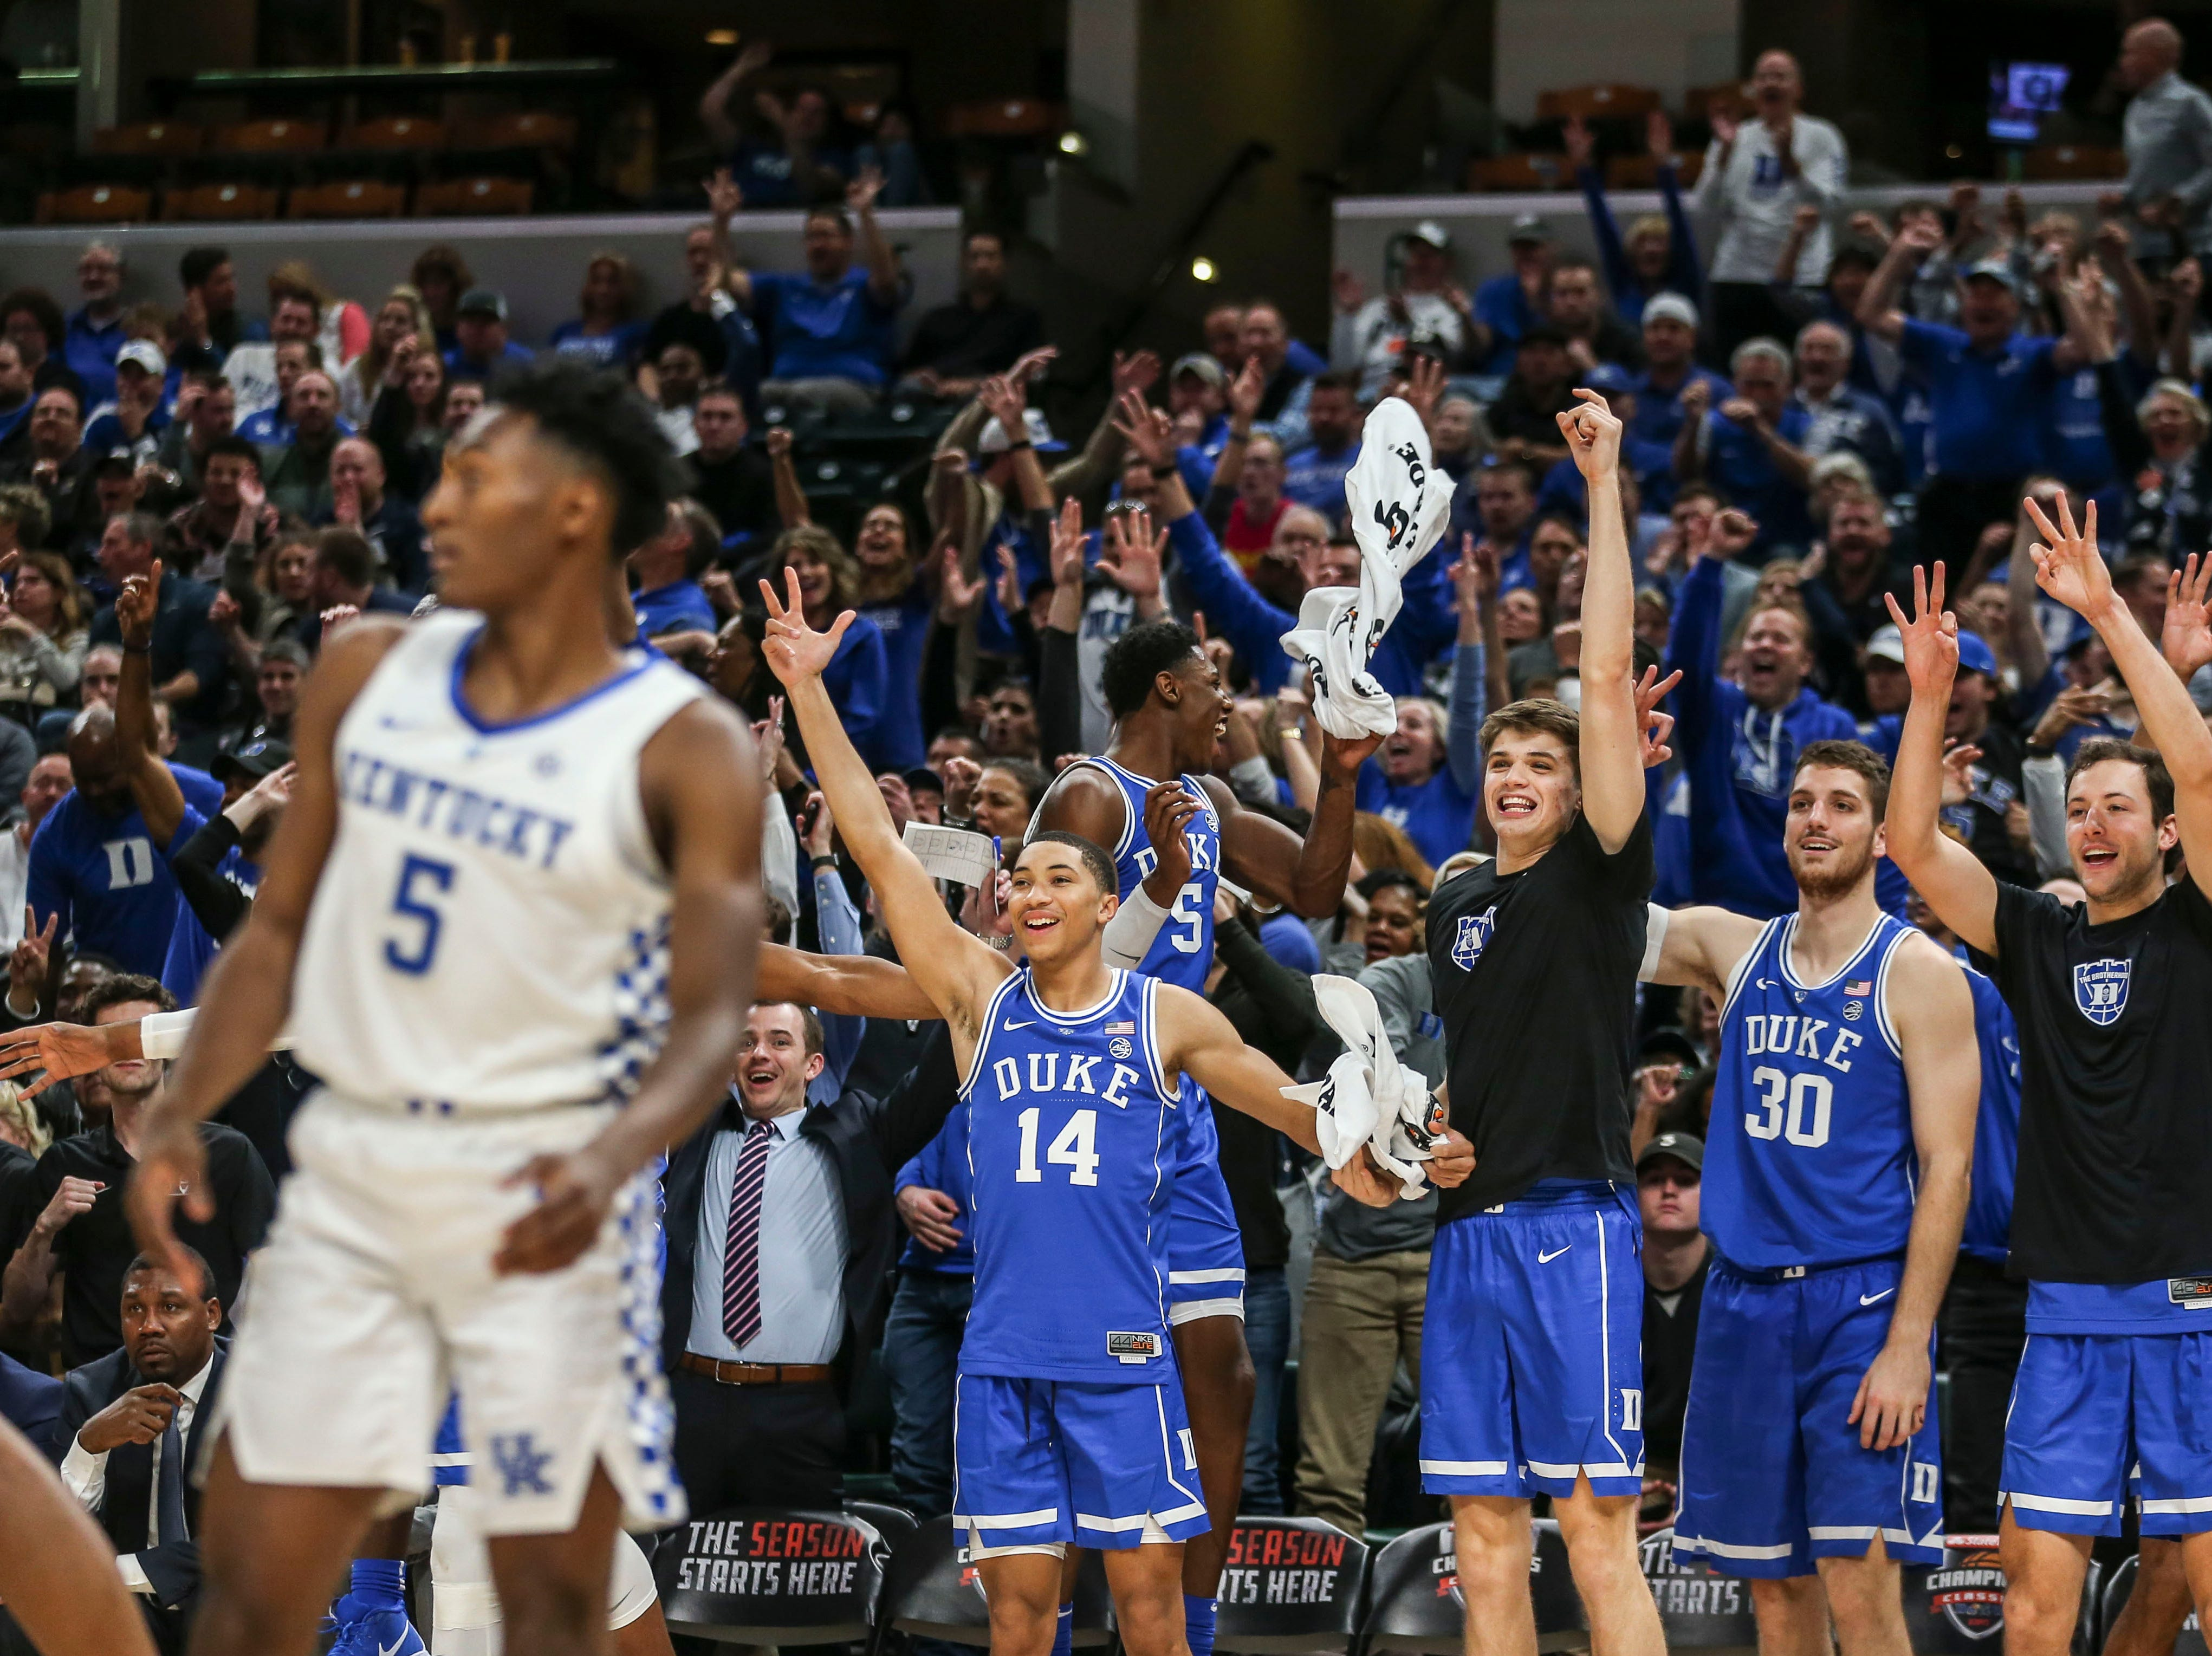 The Duke bench celebrate behind Kentucky's Immanuel Quickly as the Blue Devils routed the Wildcats 118-84 in the Champions Classic Tuesday night. Nov. 6, 2018